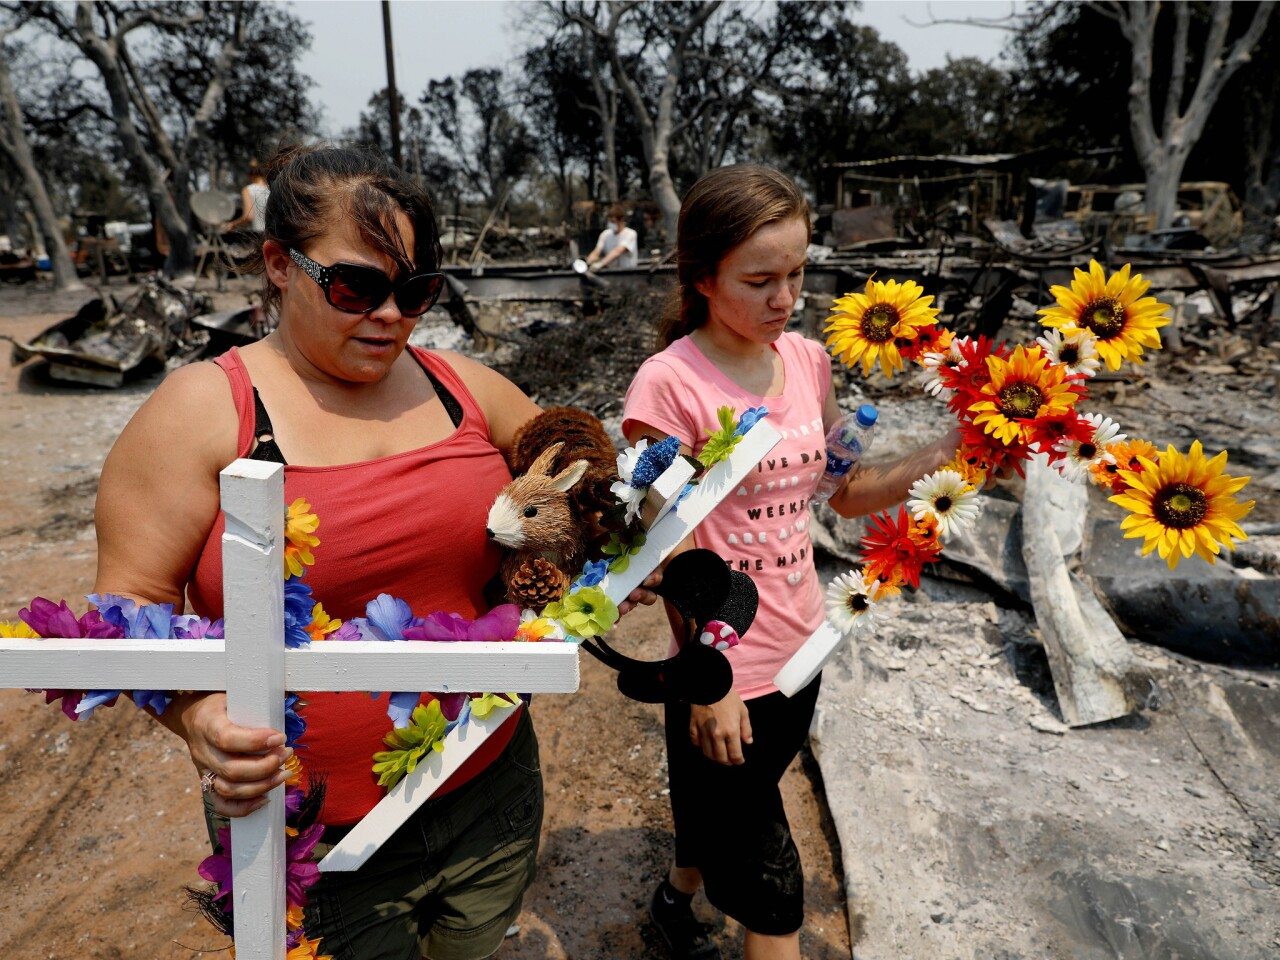 Family loss in Carr fire